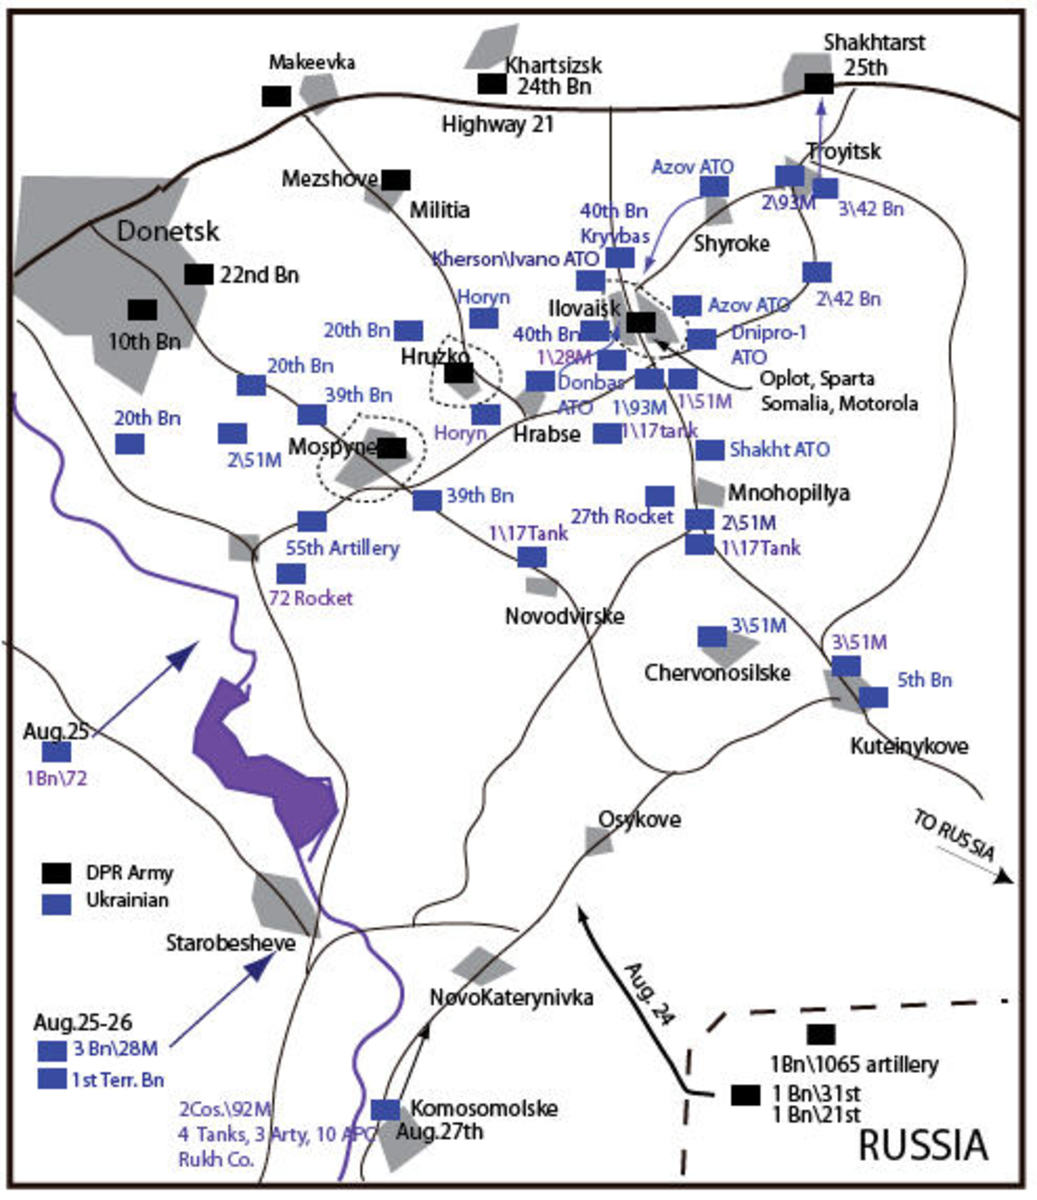 The Battle for Iloviask and Highway 21 in the Ukraine